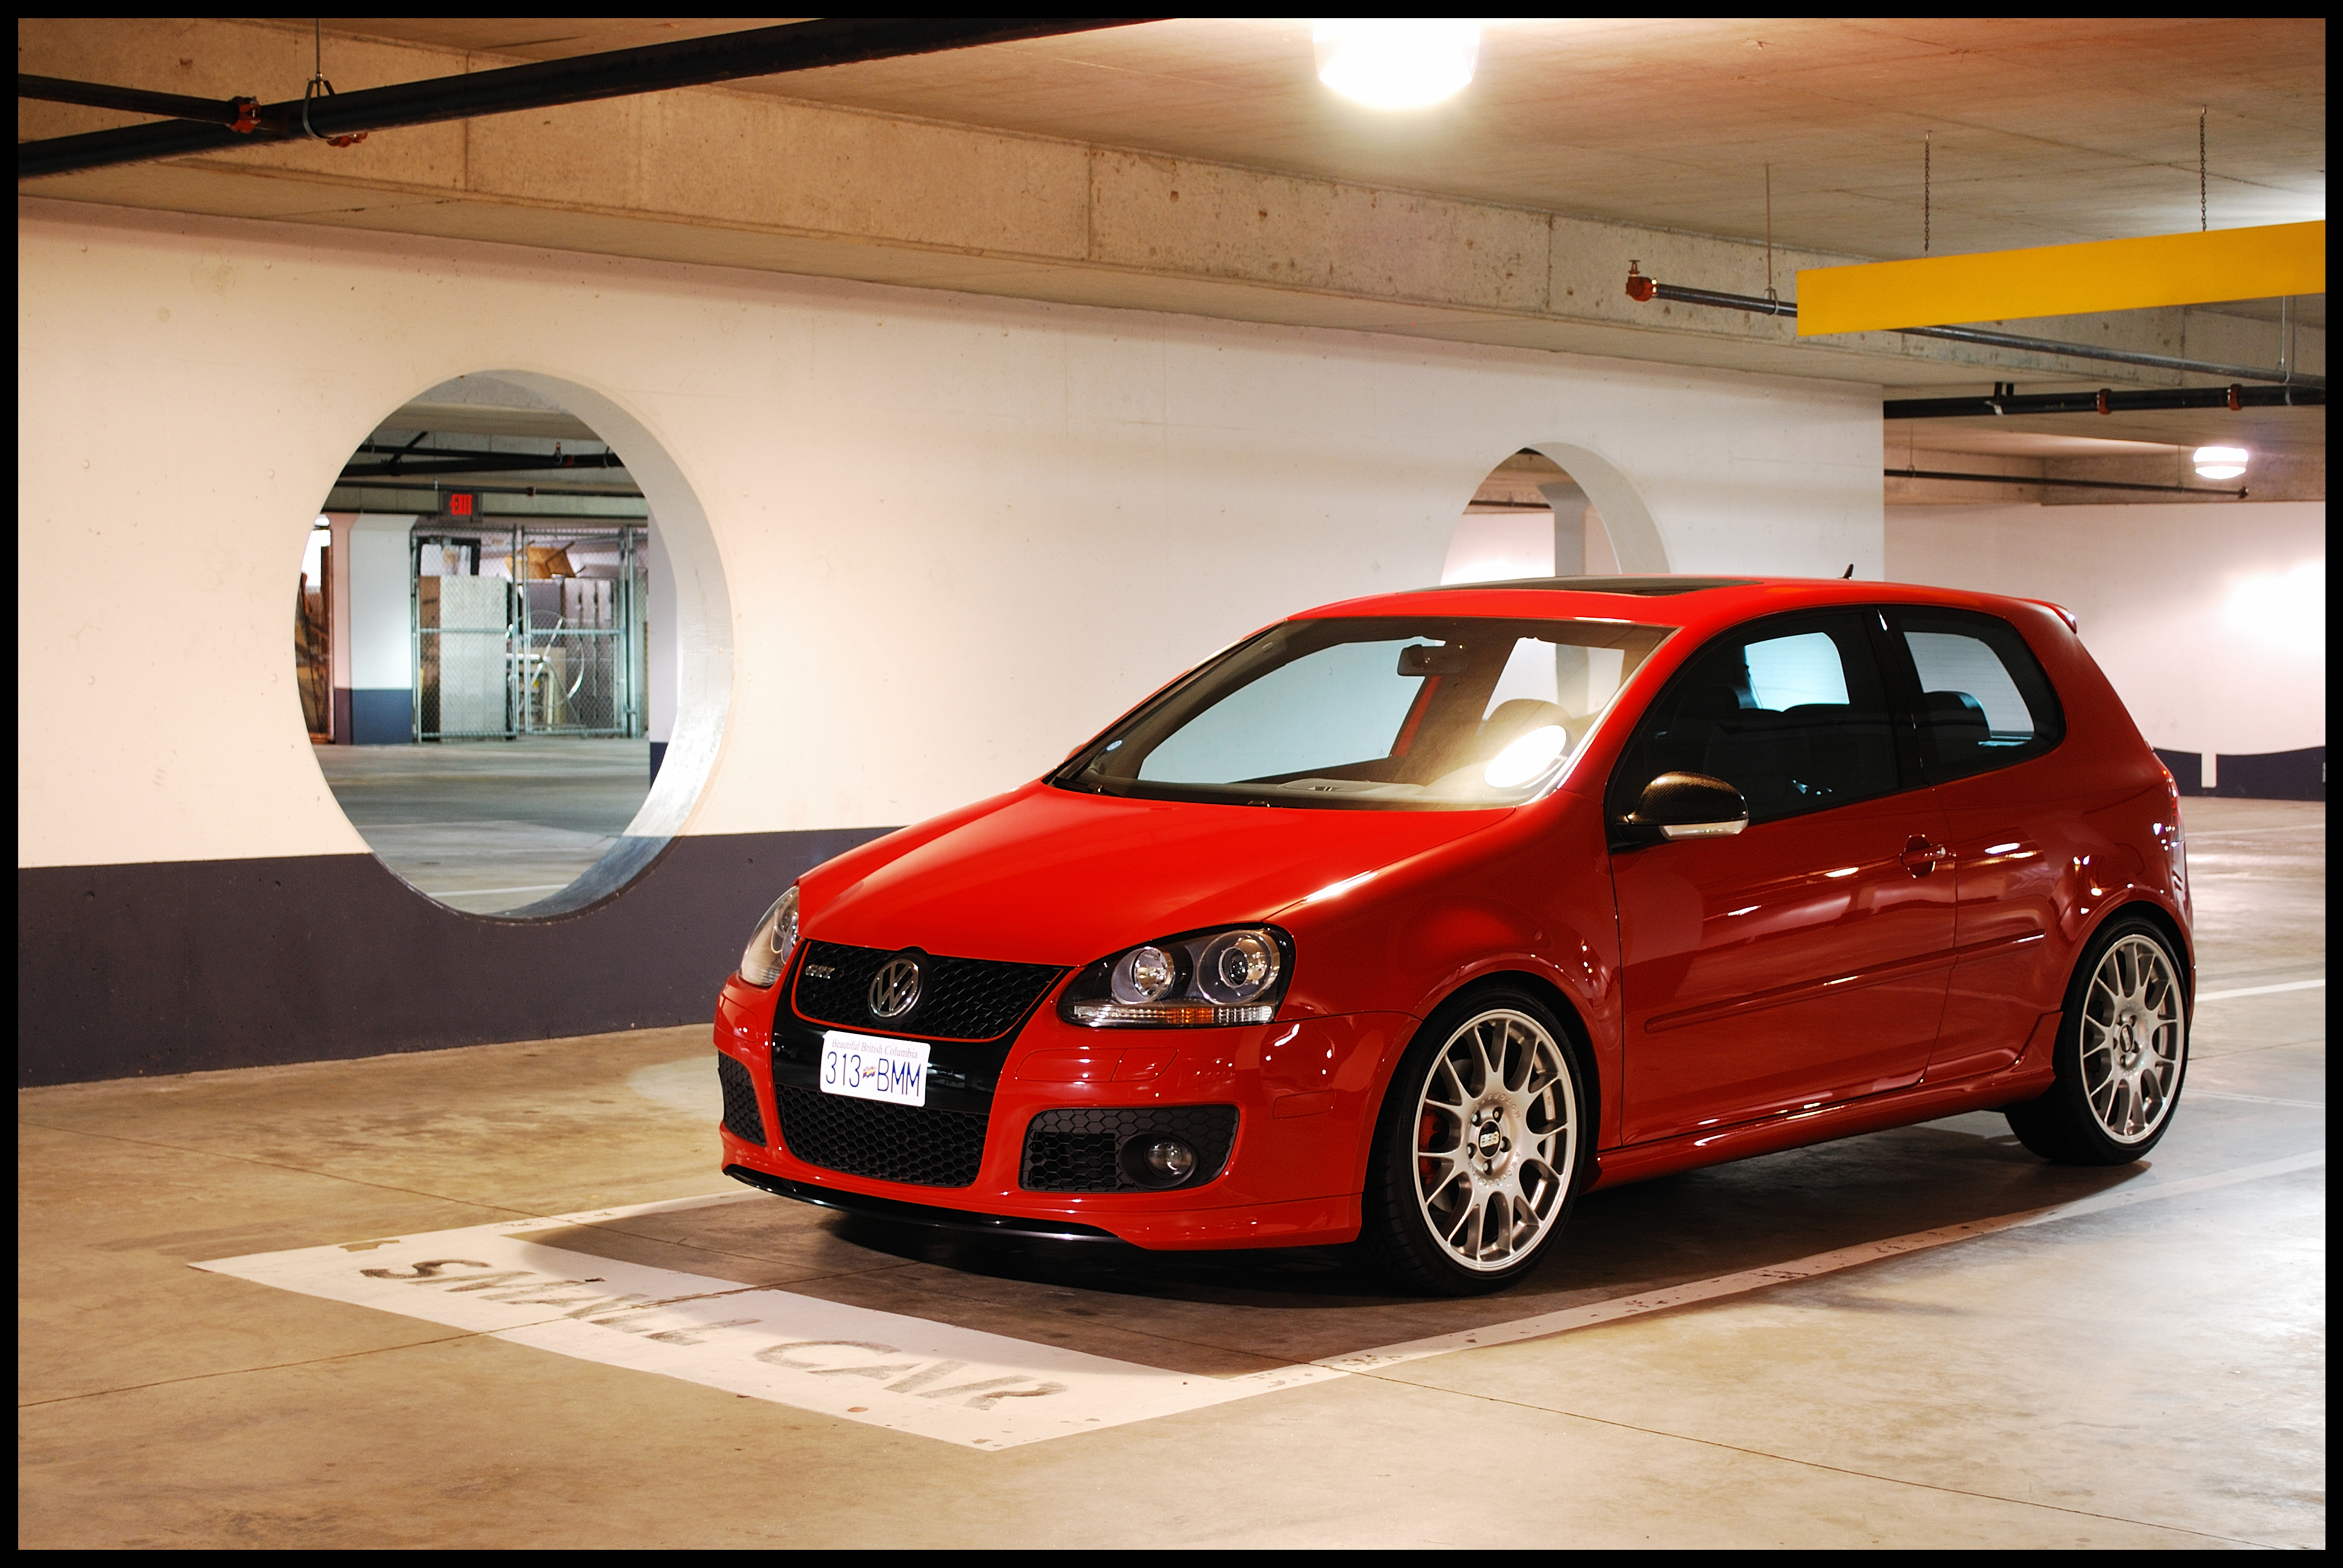 oem golf gti in red page 2 vw gti forum vw rabbit forum vw r32 forum vw golf forum. Black Bedroom Furniture Sets. Home Design Ideas